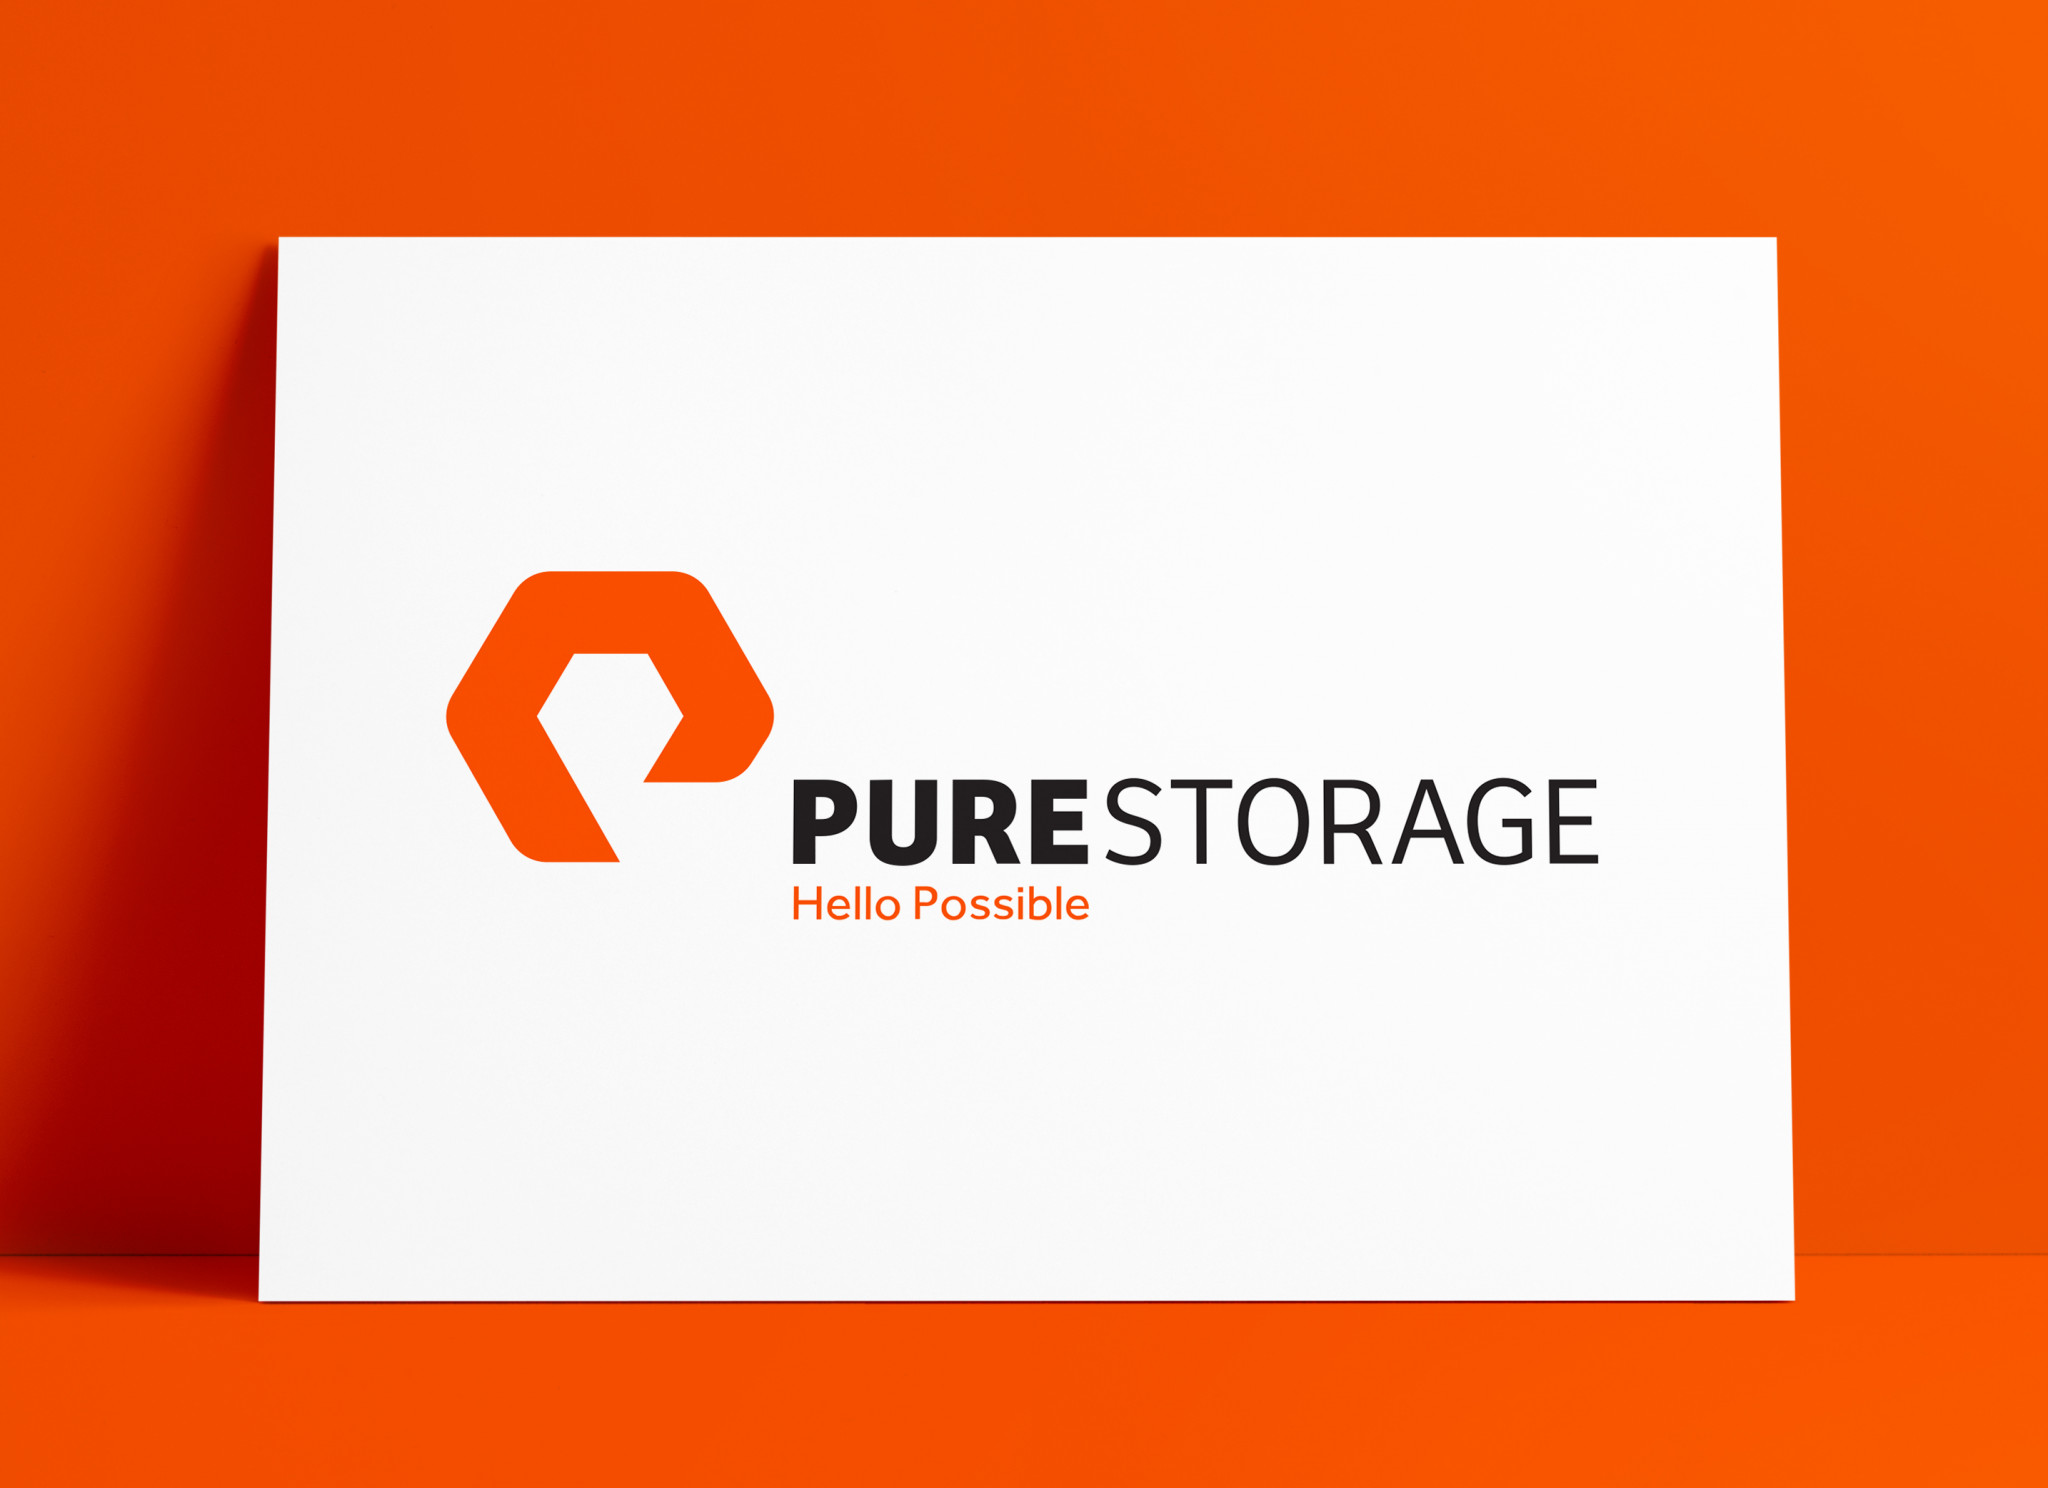 Pure Storage Logo MockUp Poster The Logo Smith